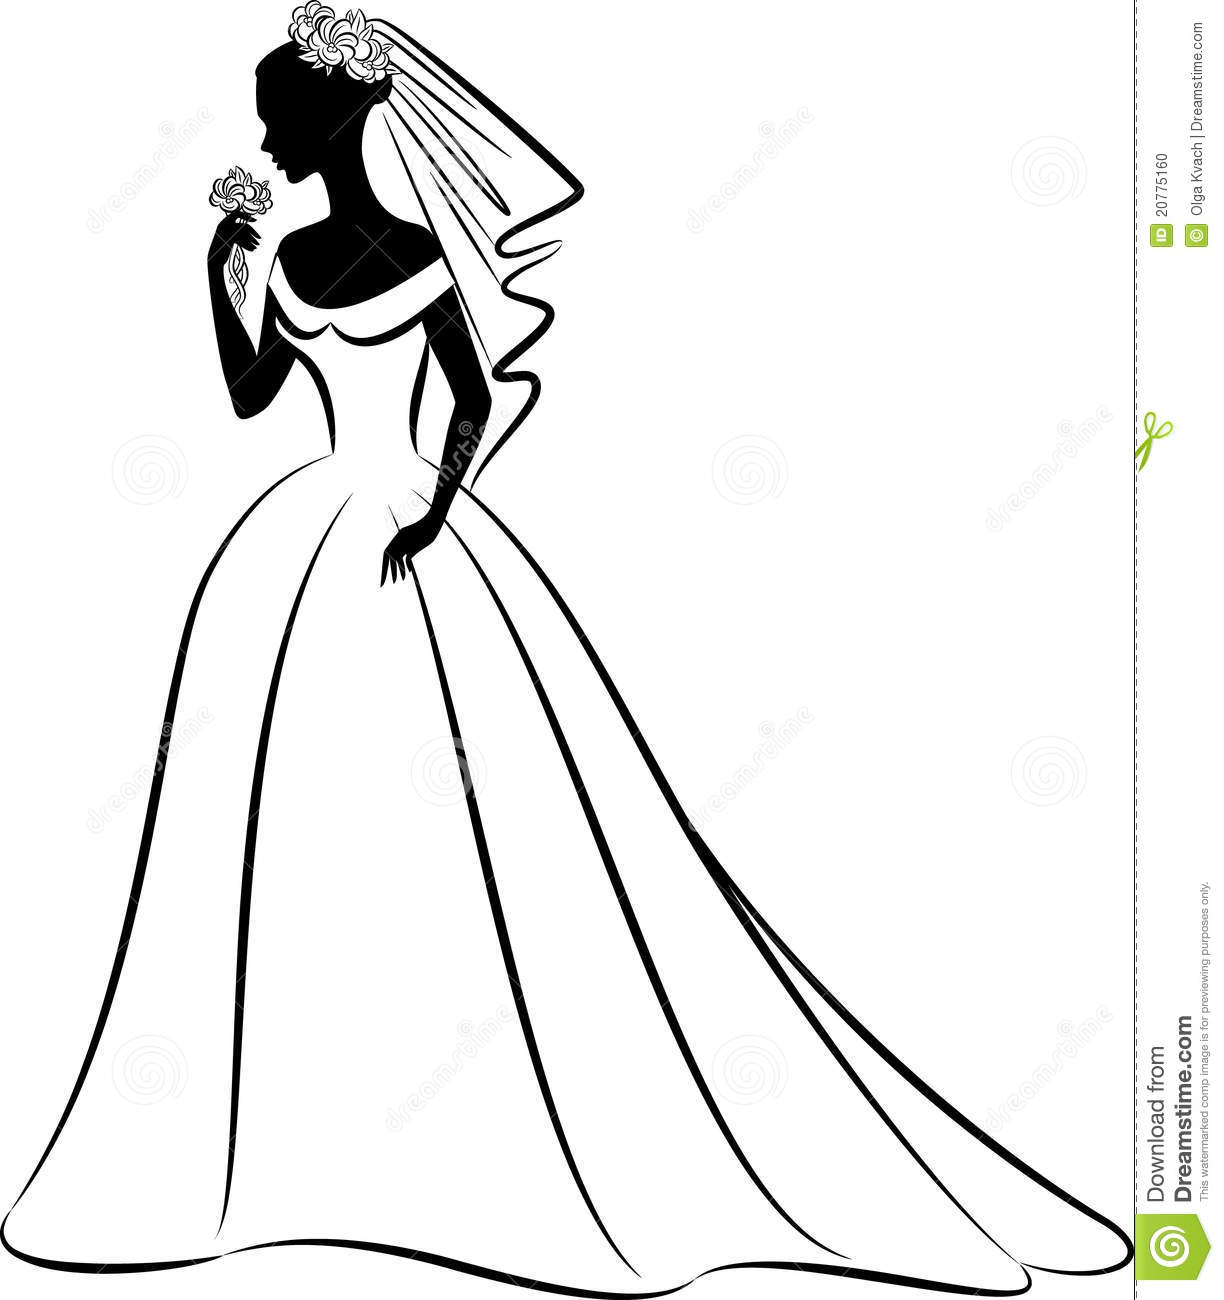 wedding party silhouette free template at getdrawings com free for rh getdrawings com  hindu wedding clipart free black and white